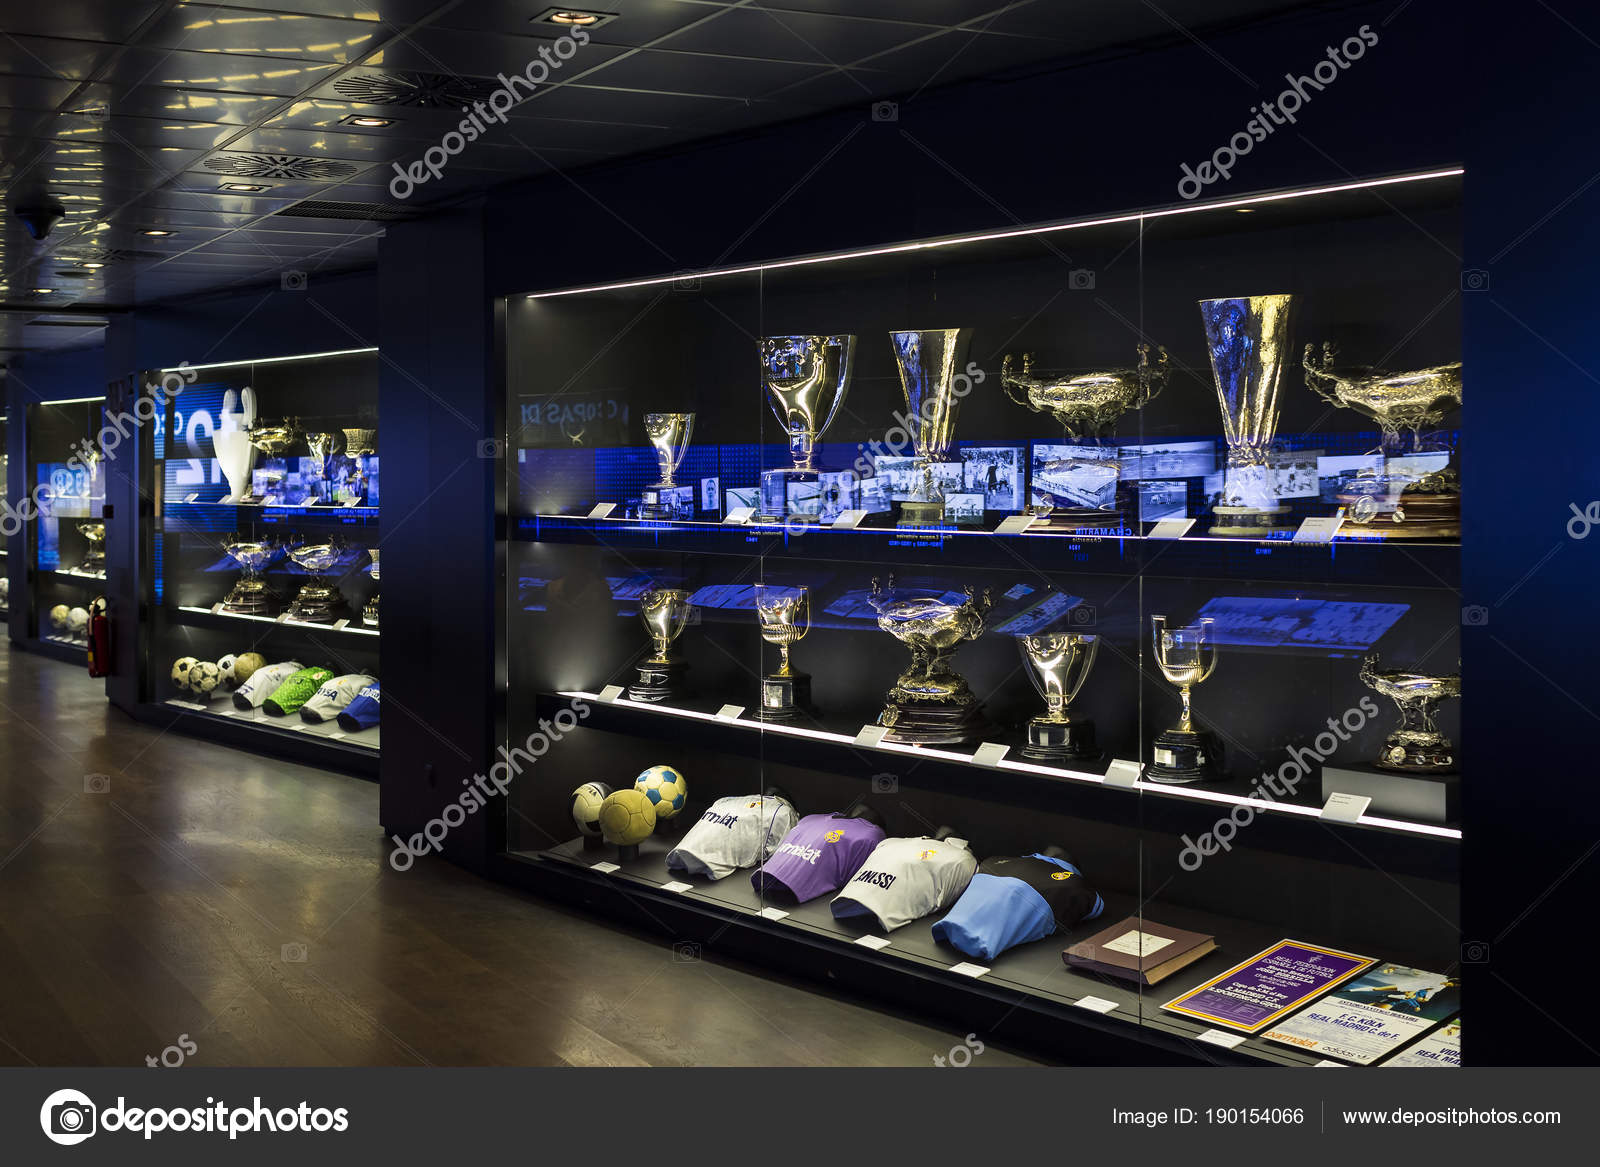 Museo Real Madrid.Madrid Spain March 2018 Museum Real Madrid Football Club Cups